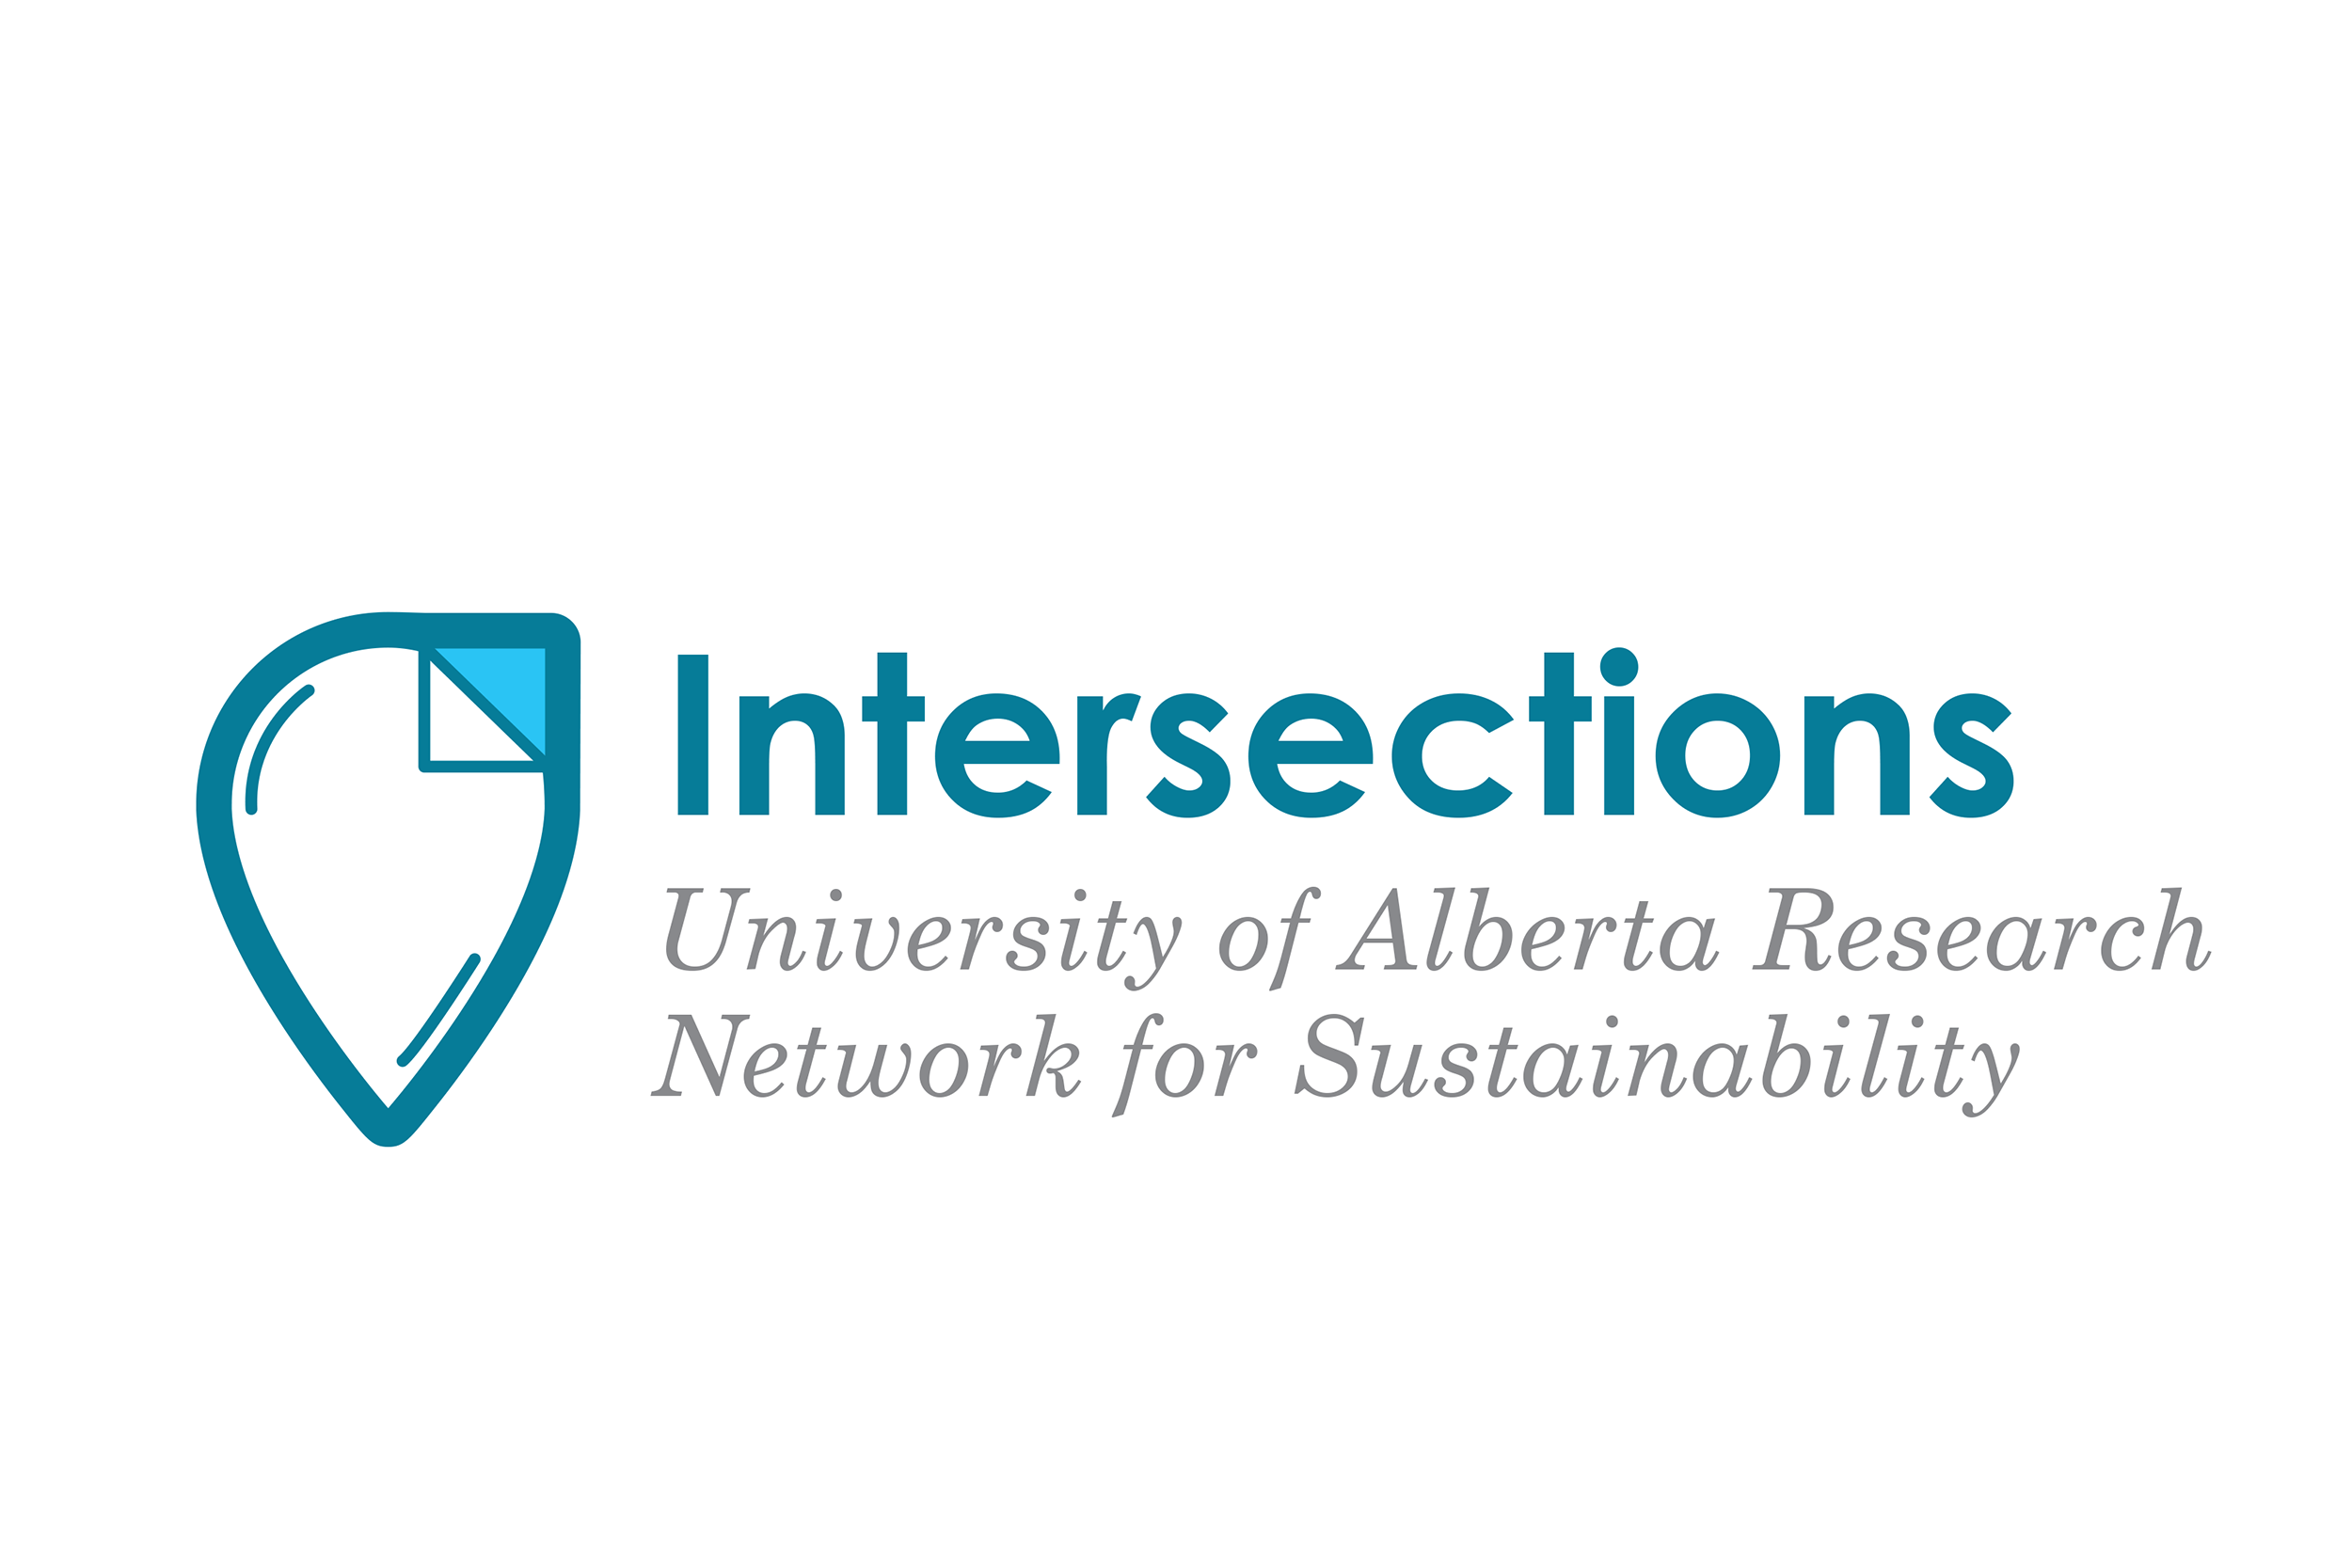 Intersections-Concepts-2.png